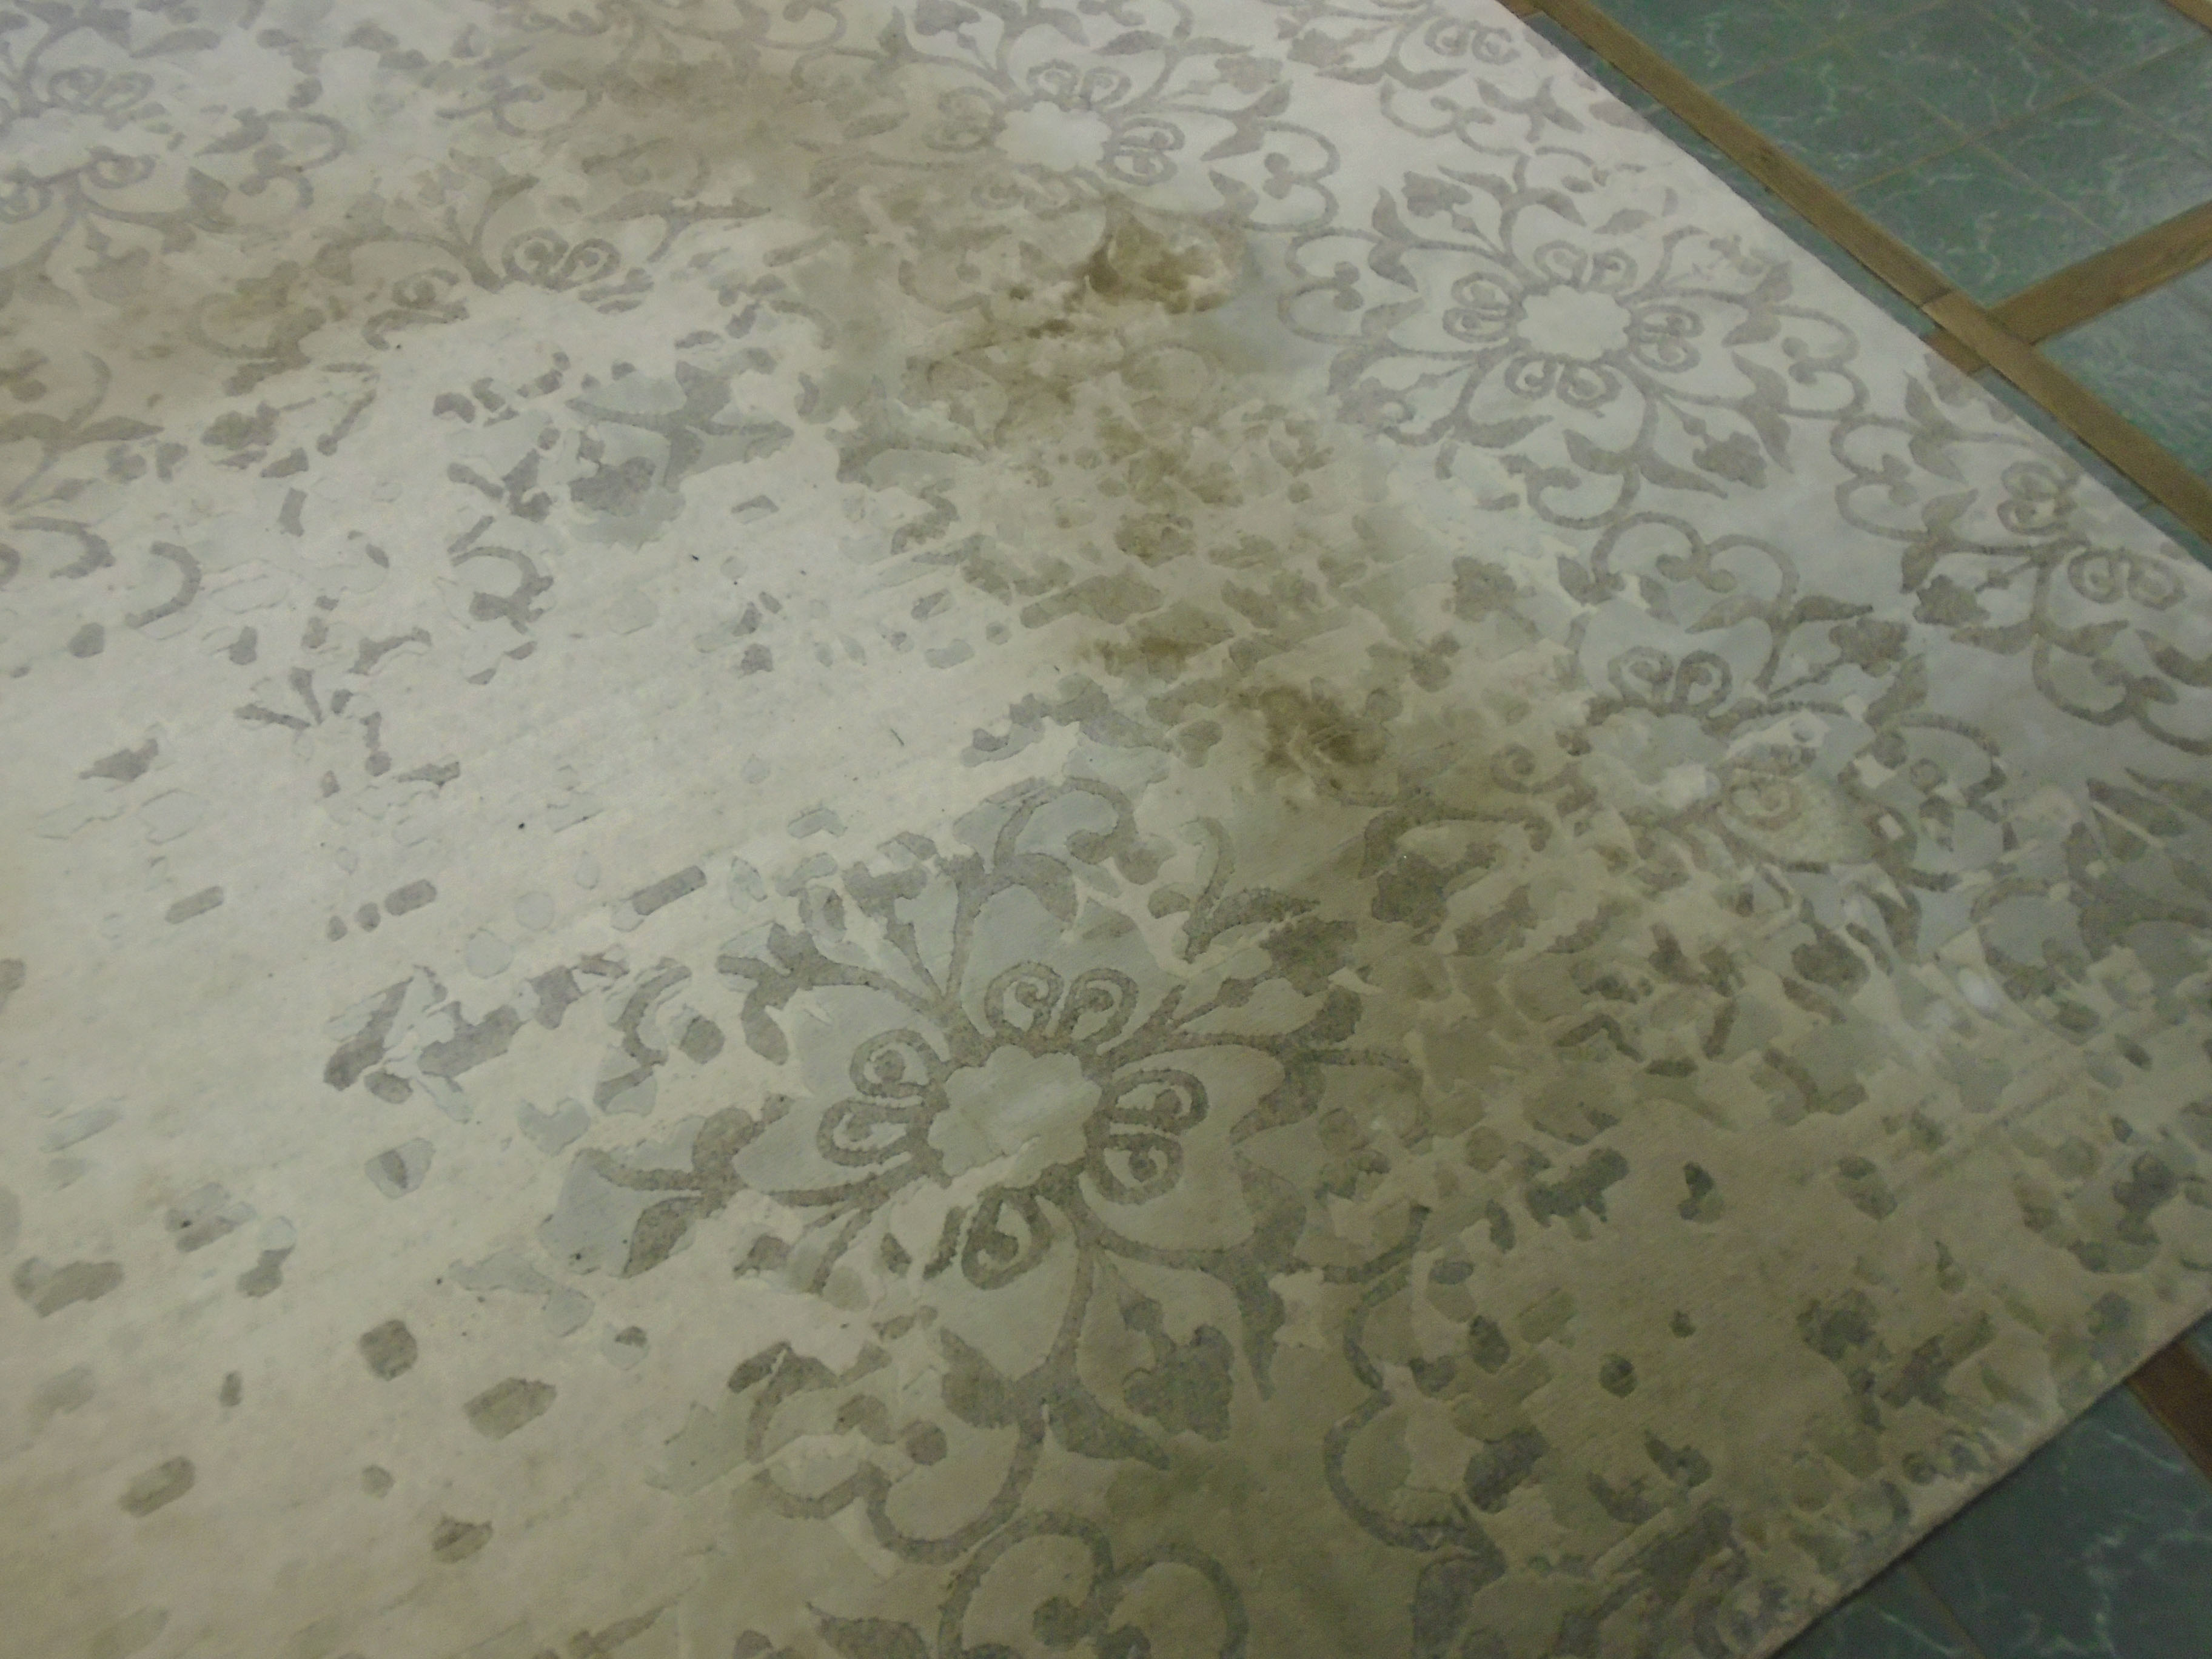 Dirty Bamboo Silk Rug Before Close Up